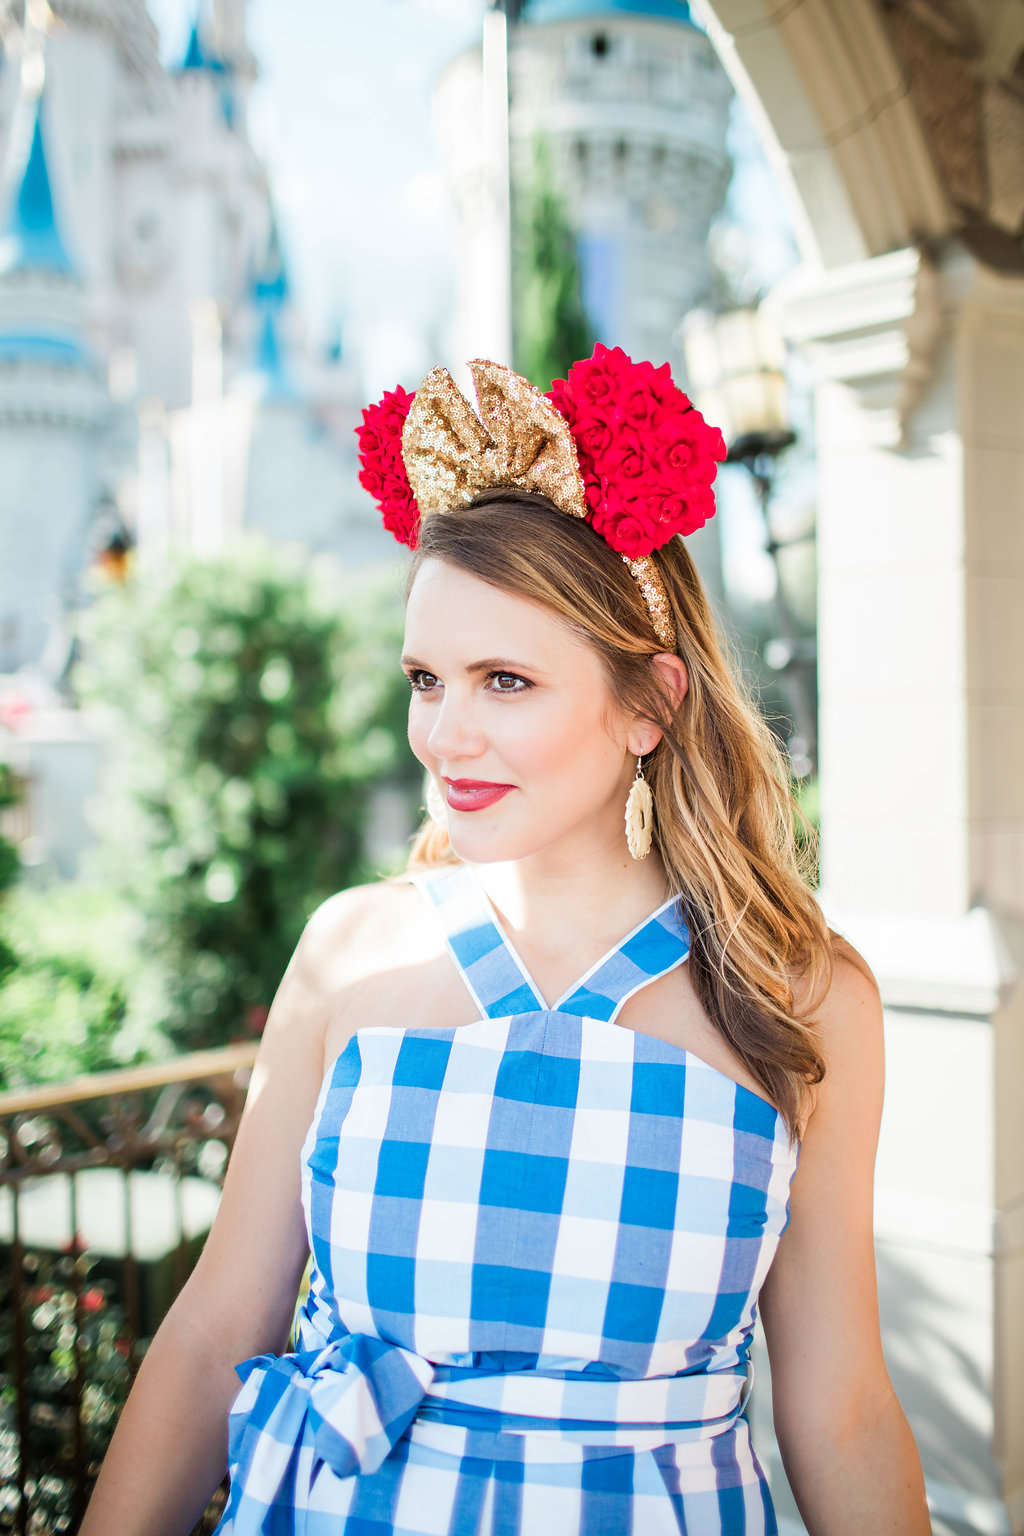 40025e2135516 Check out my Magical Castle look and be sure to peruse my favorite Draper  James outfits at the bottom of this post. I had such a blast at The Magical  ...